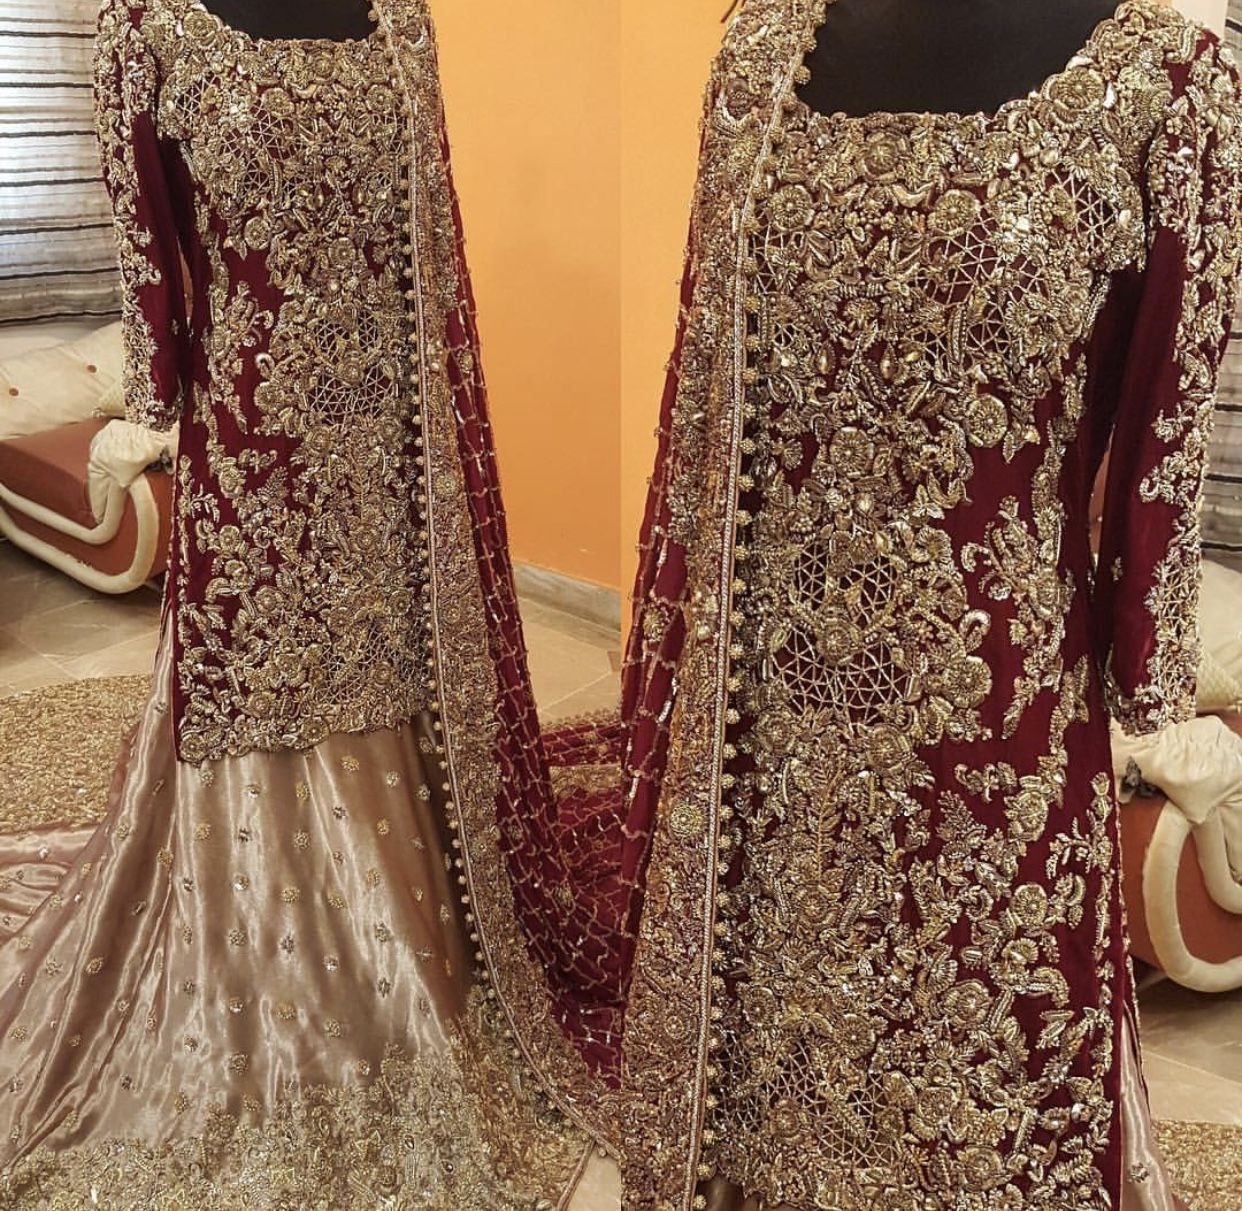 Whatsapp 00923352756622 To Plaxe Your Order For This Elegant Bridal Www Instagram Com Designer Red Bridal Dress Pakistani Bridal Dresses Pakistani Bridal Wear